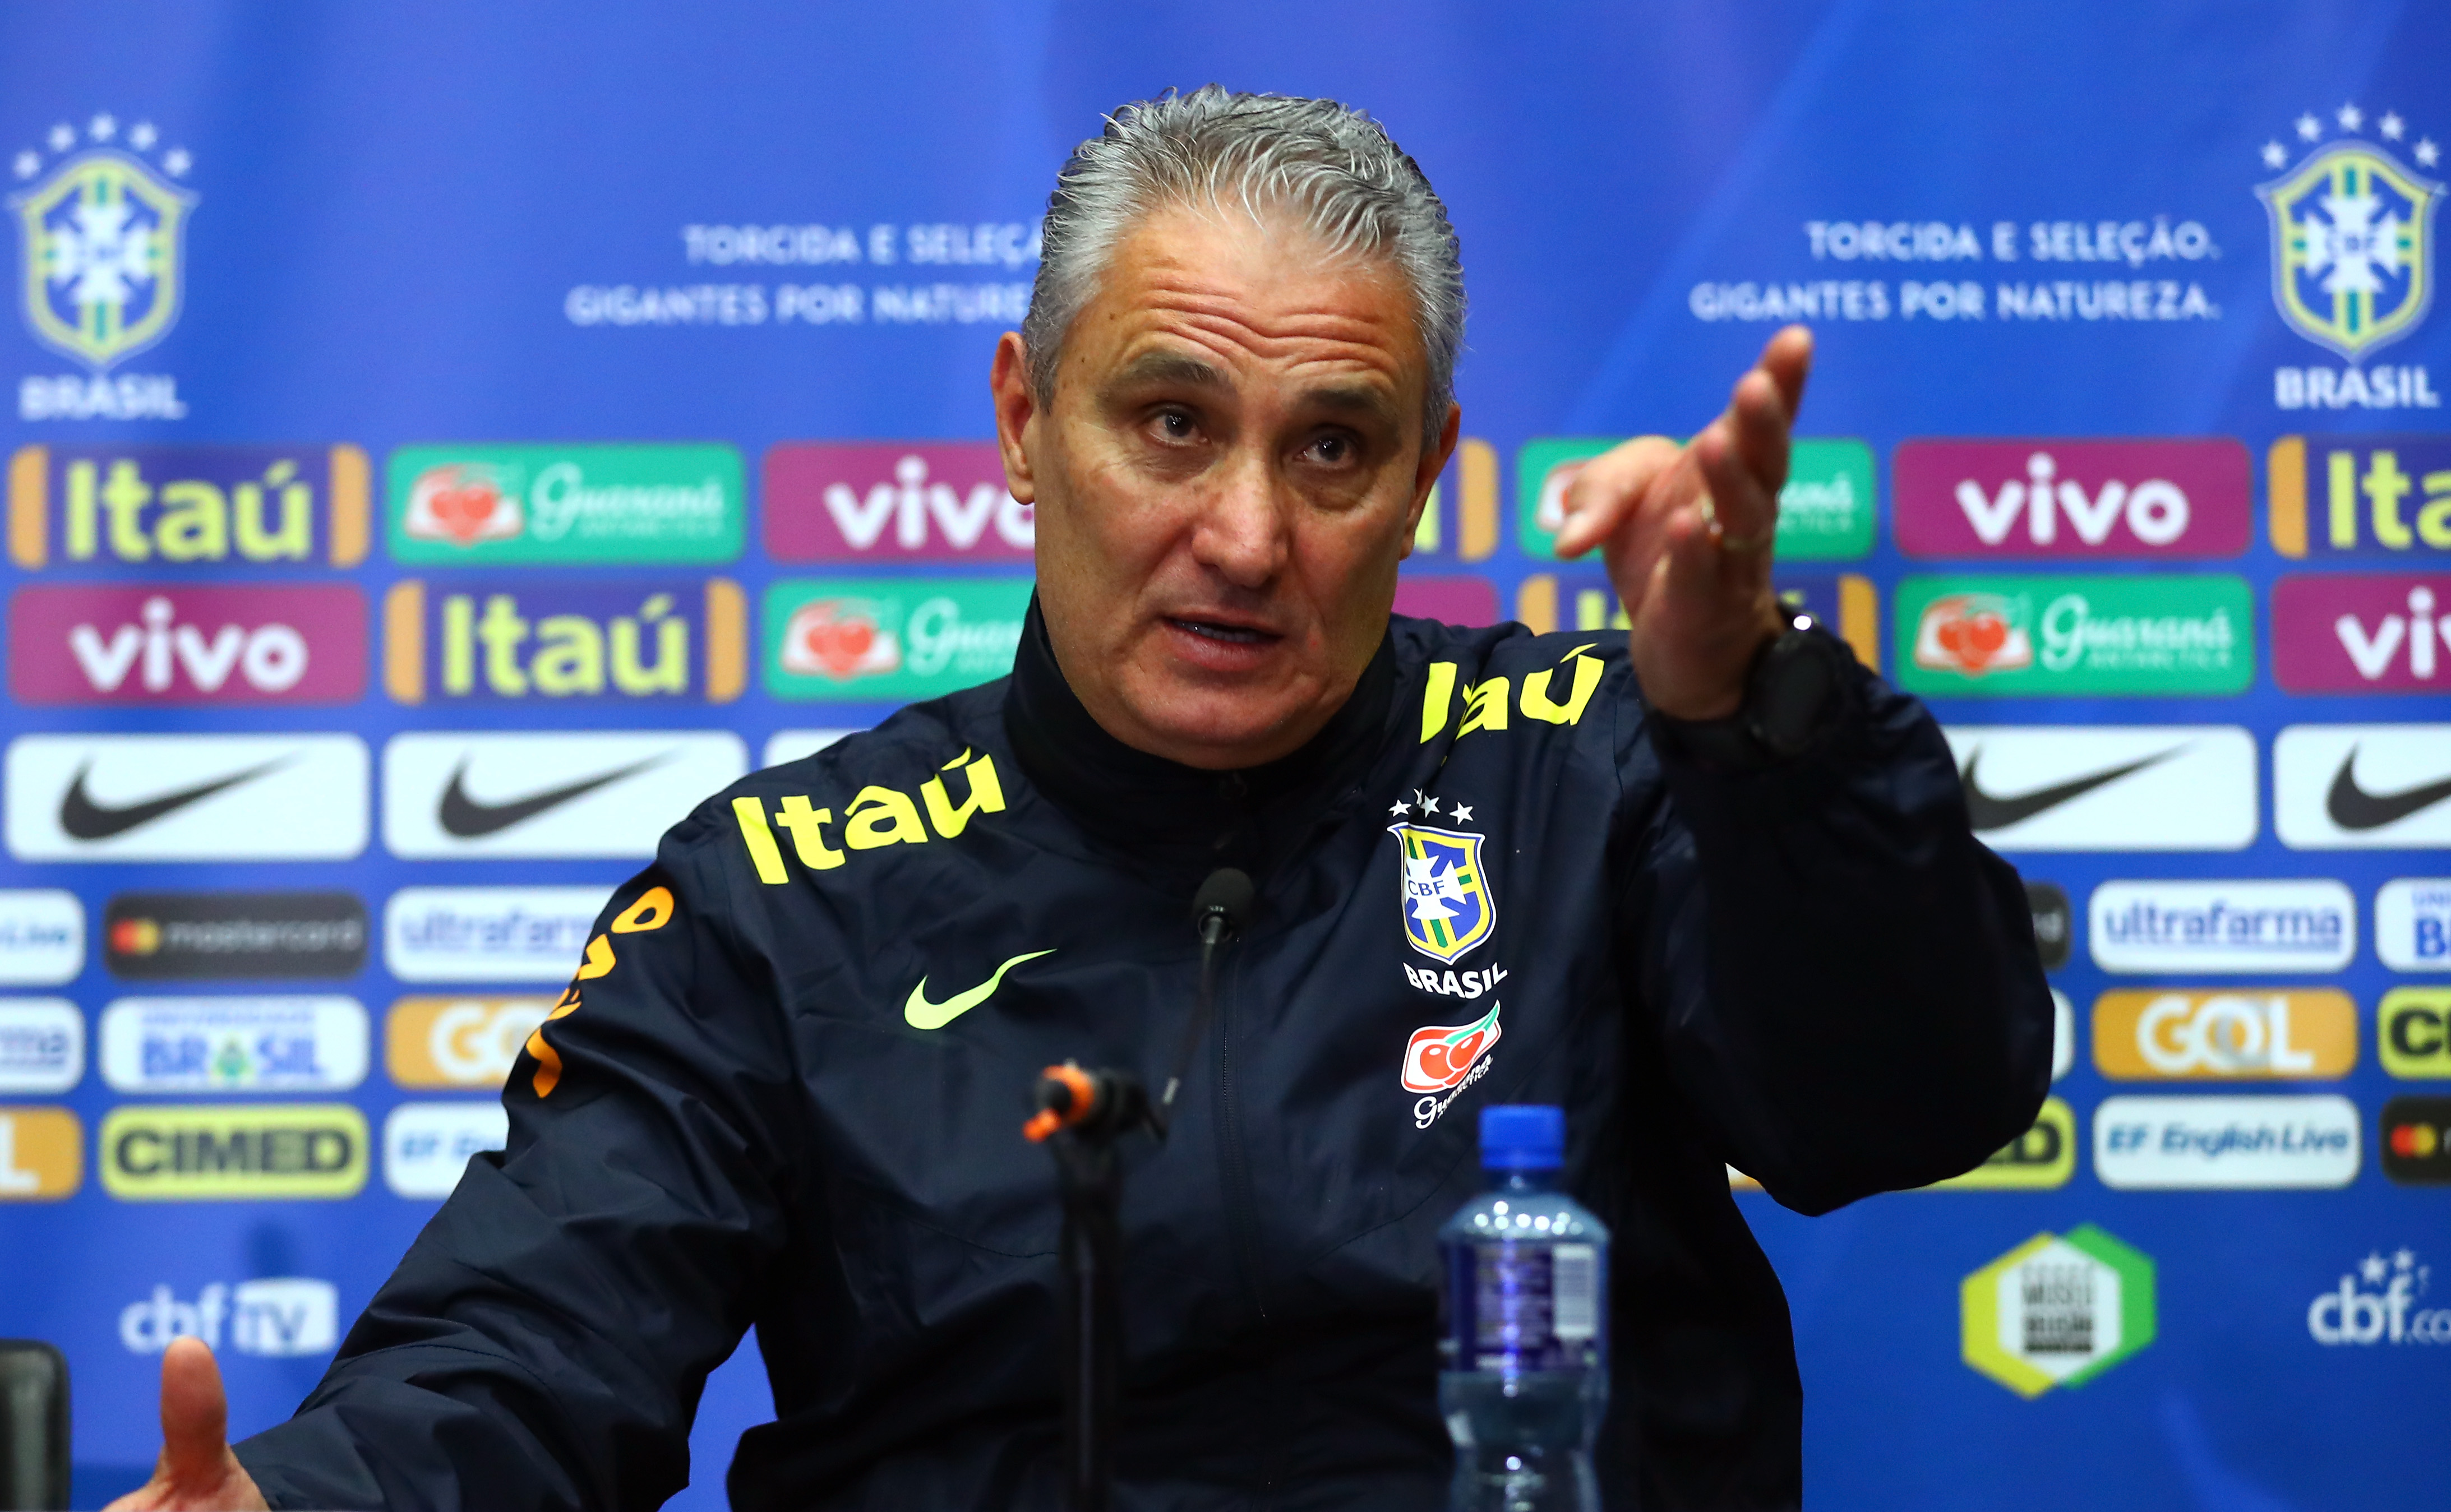 Brazil Coach Tite Facing Selection Challenges Ahead of World Cup